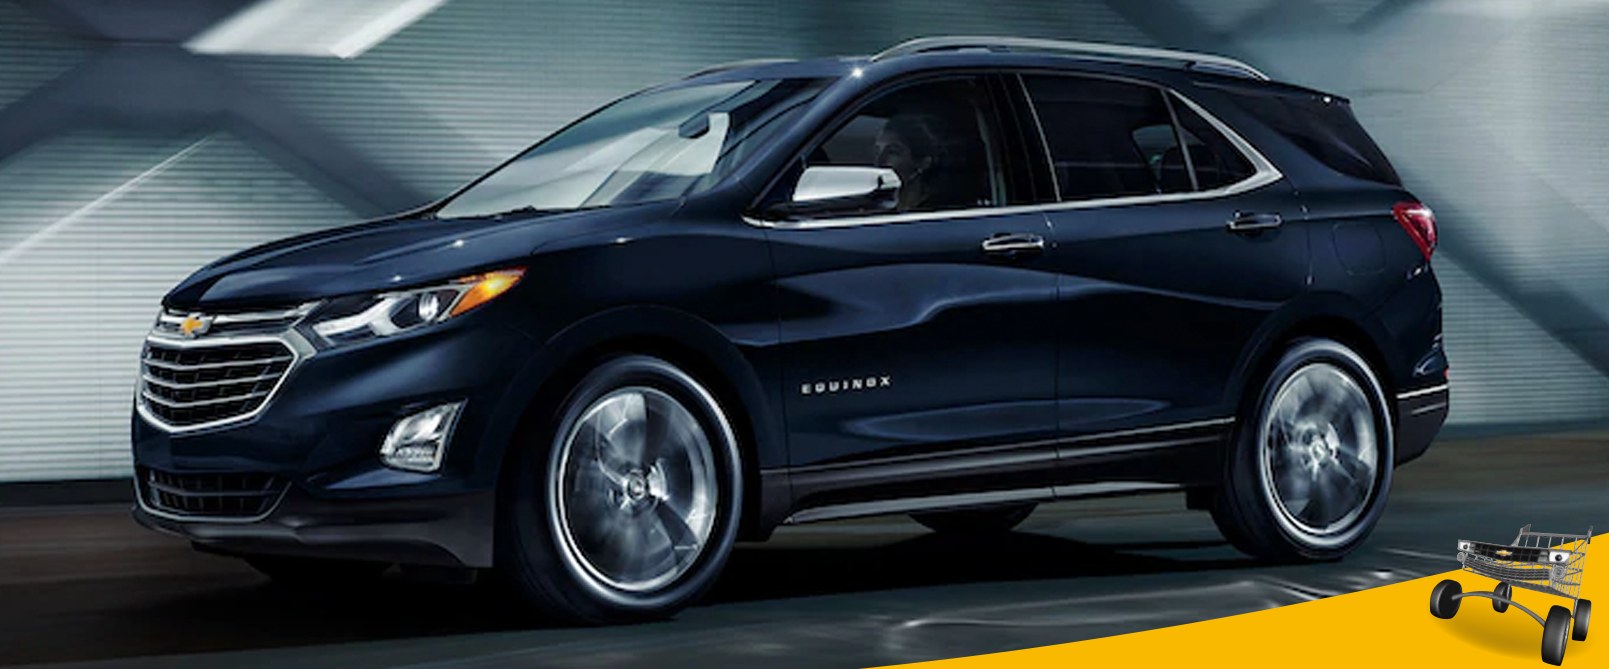 Chicago IL 2020 Chevy Equinox SUV Dealership